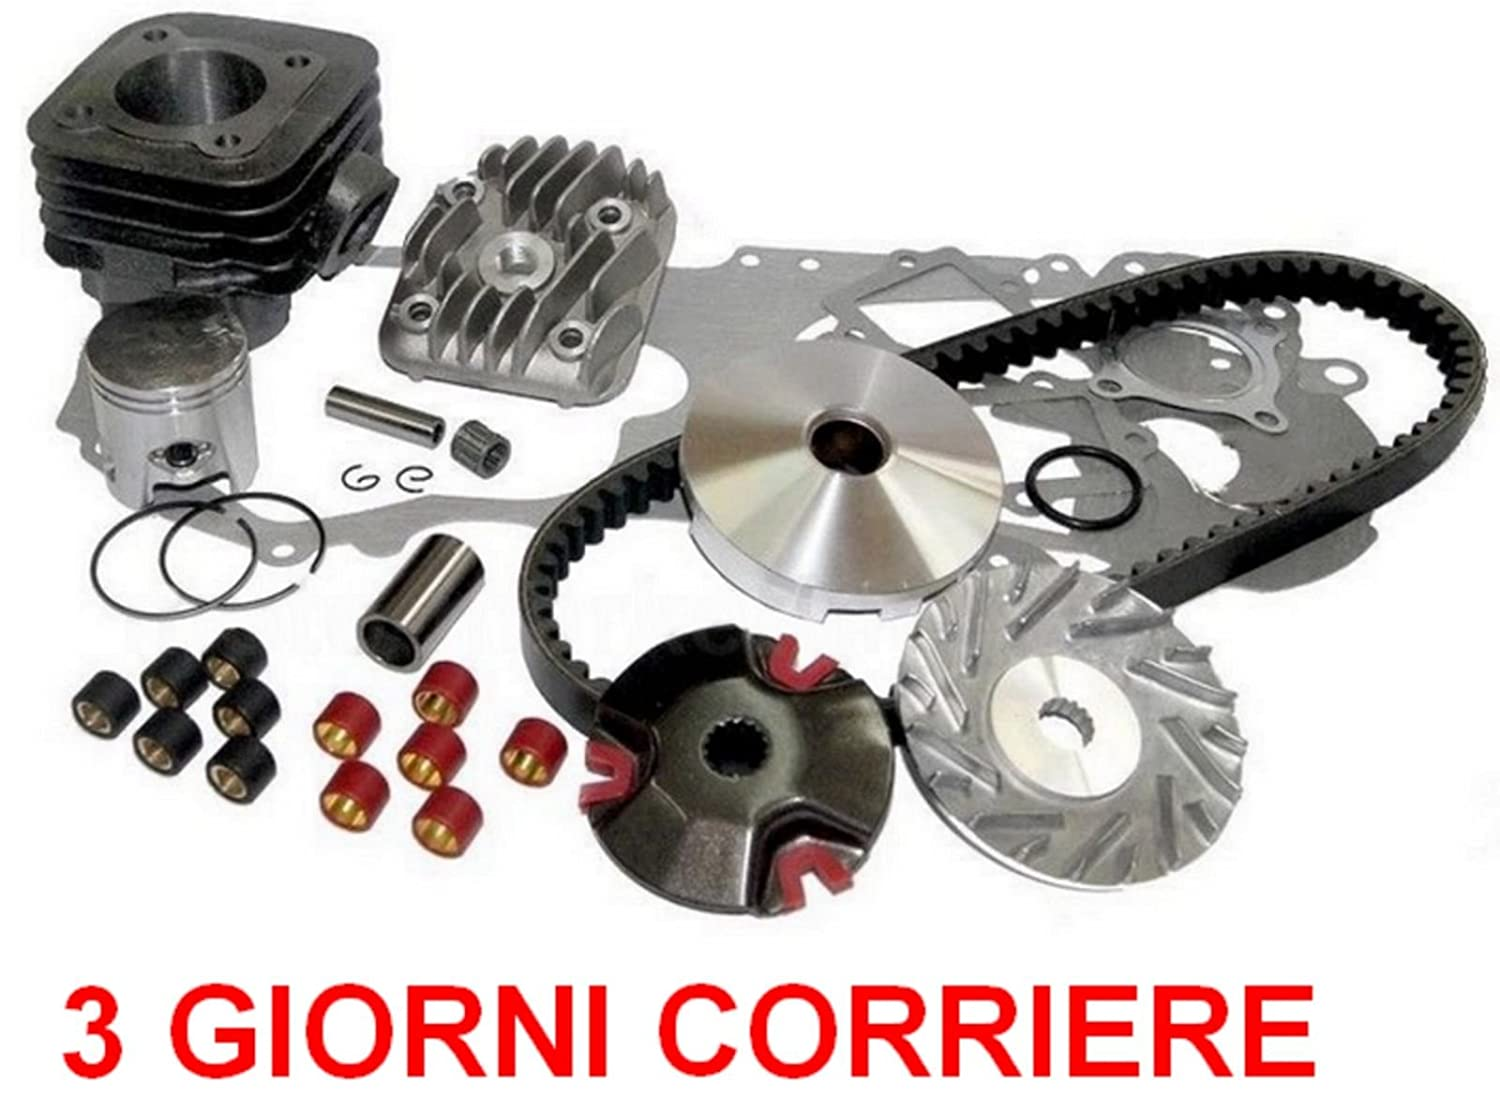 VARIATORE Kit Set per KEEWAY F-Act Evo 50 Unbranded 70cc Gruppo Cilindro